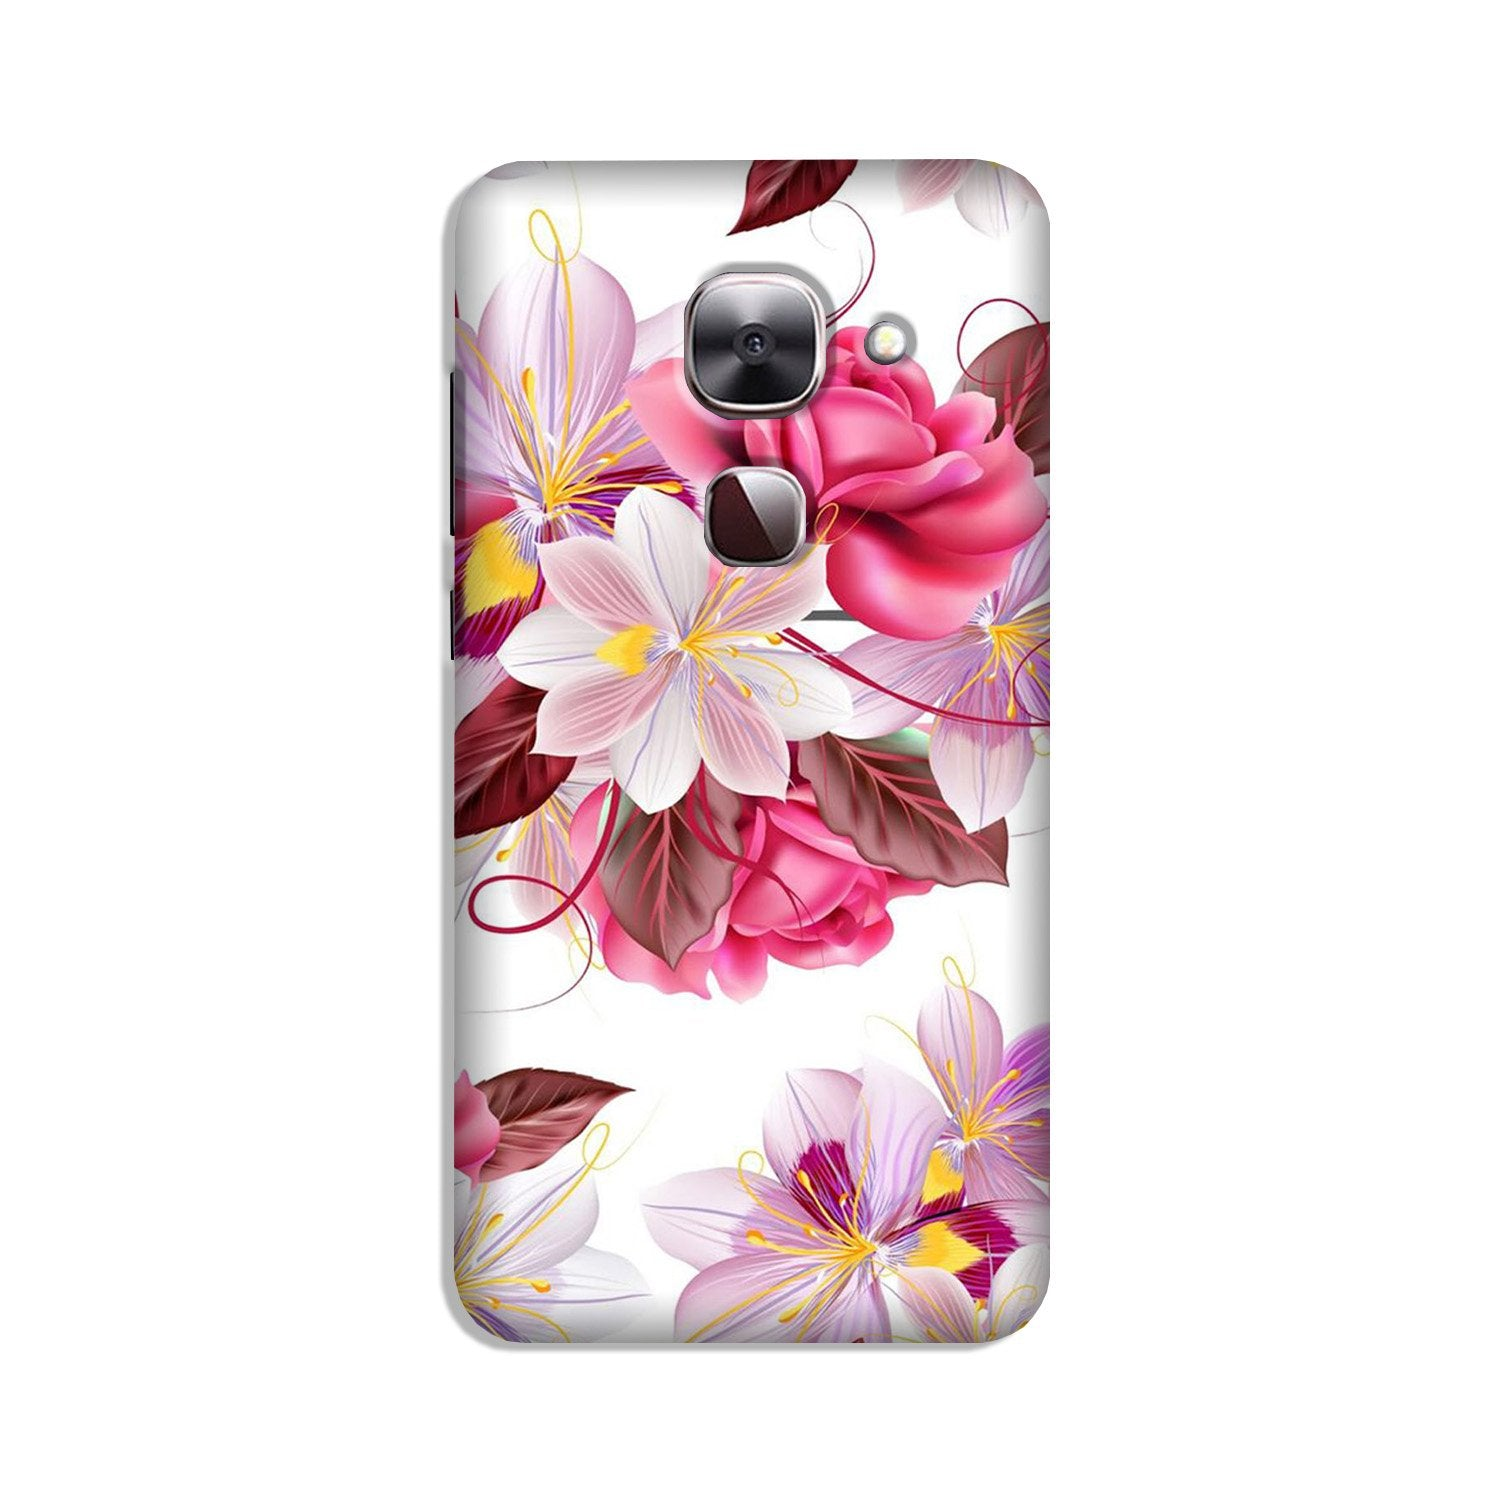 Beautiful flowers Case for LeEco le 2s